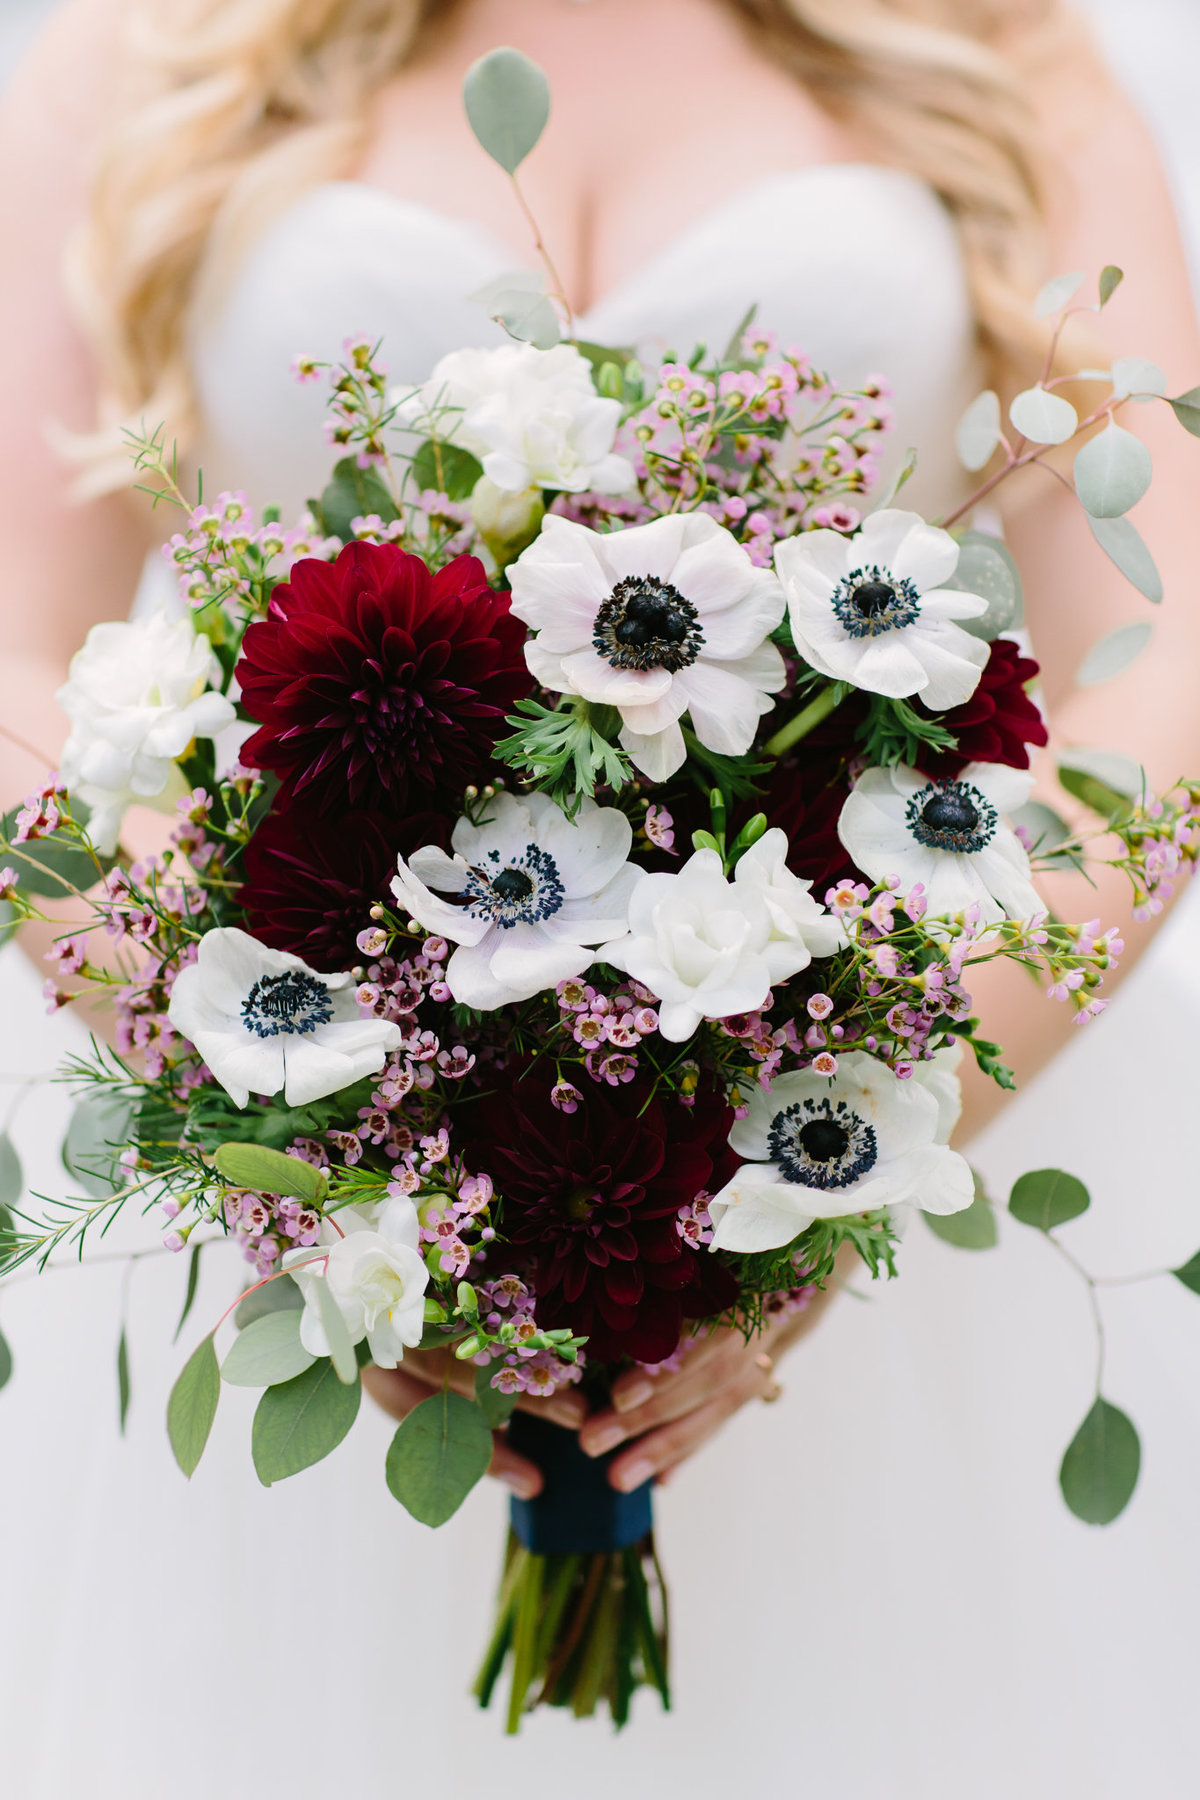 Bridal bouquet with fall tones and poppies